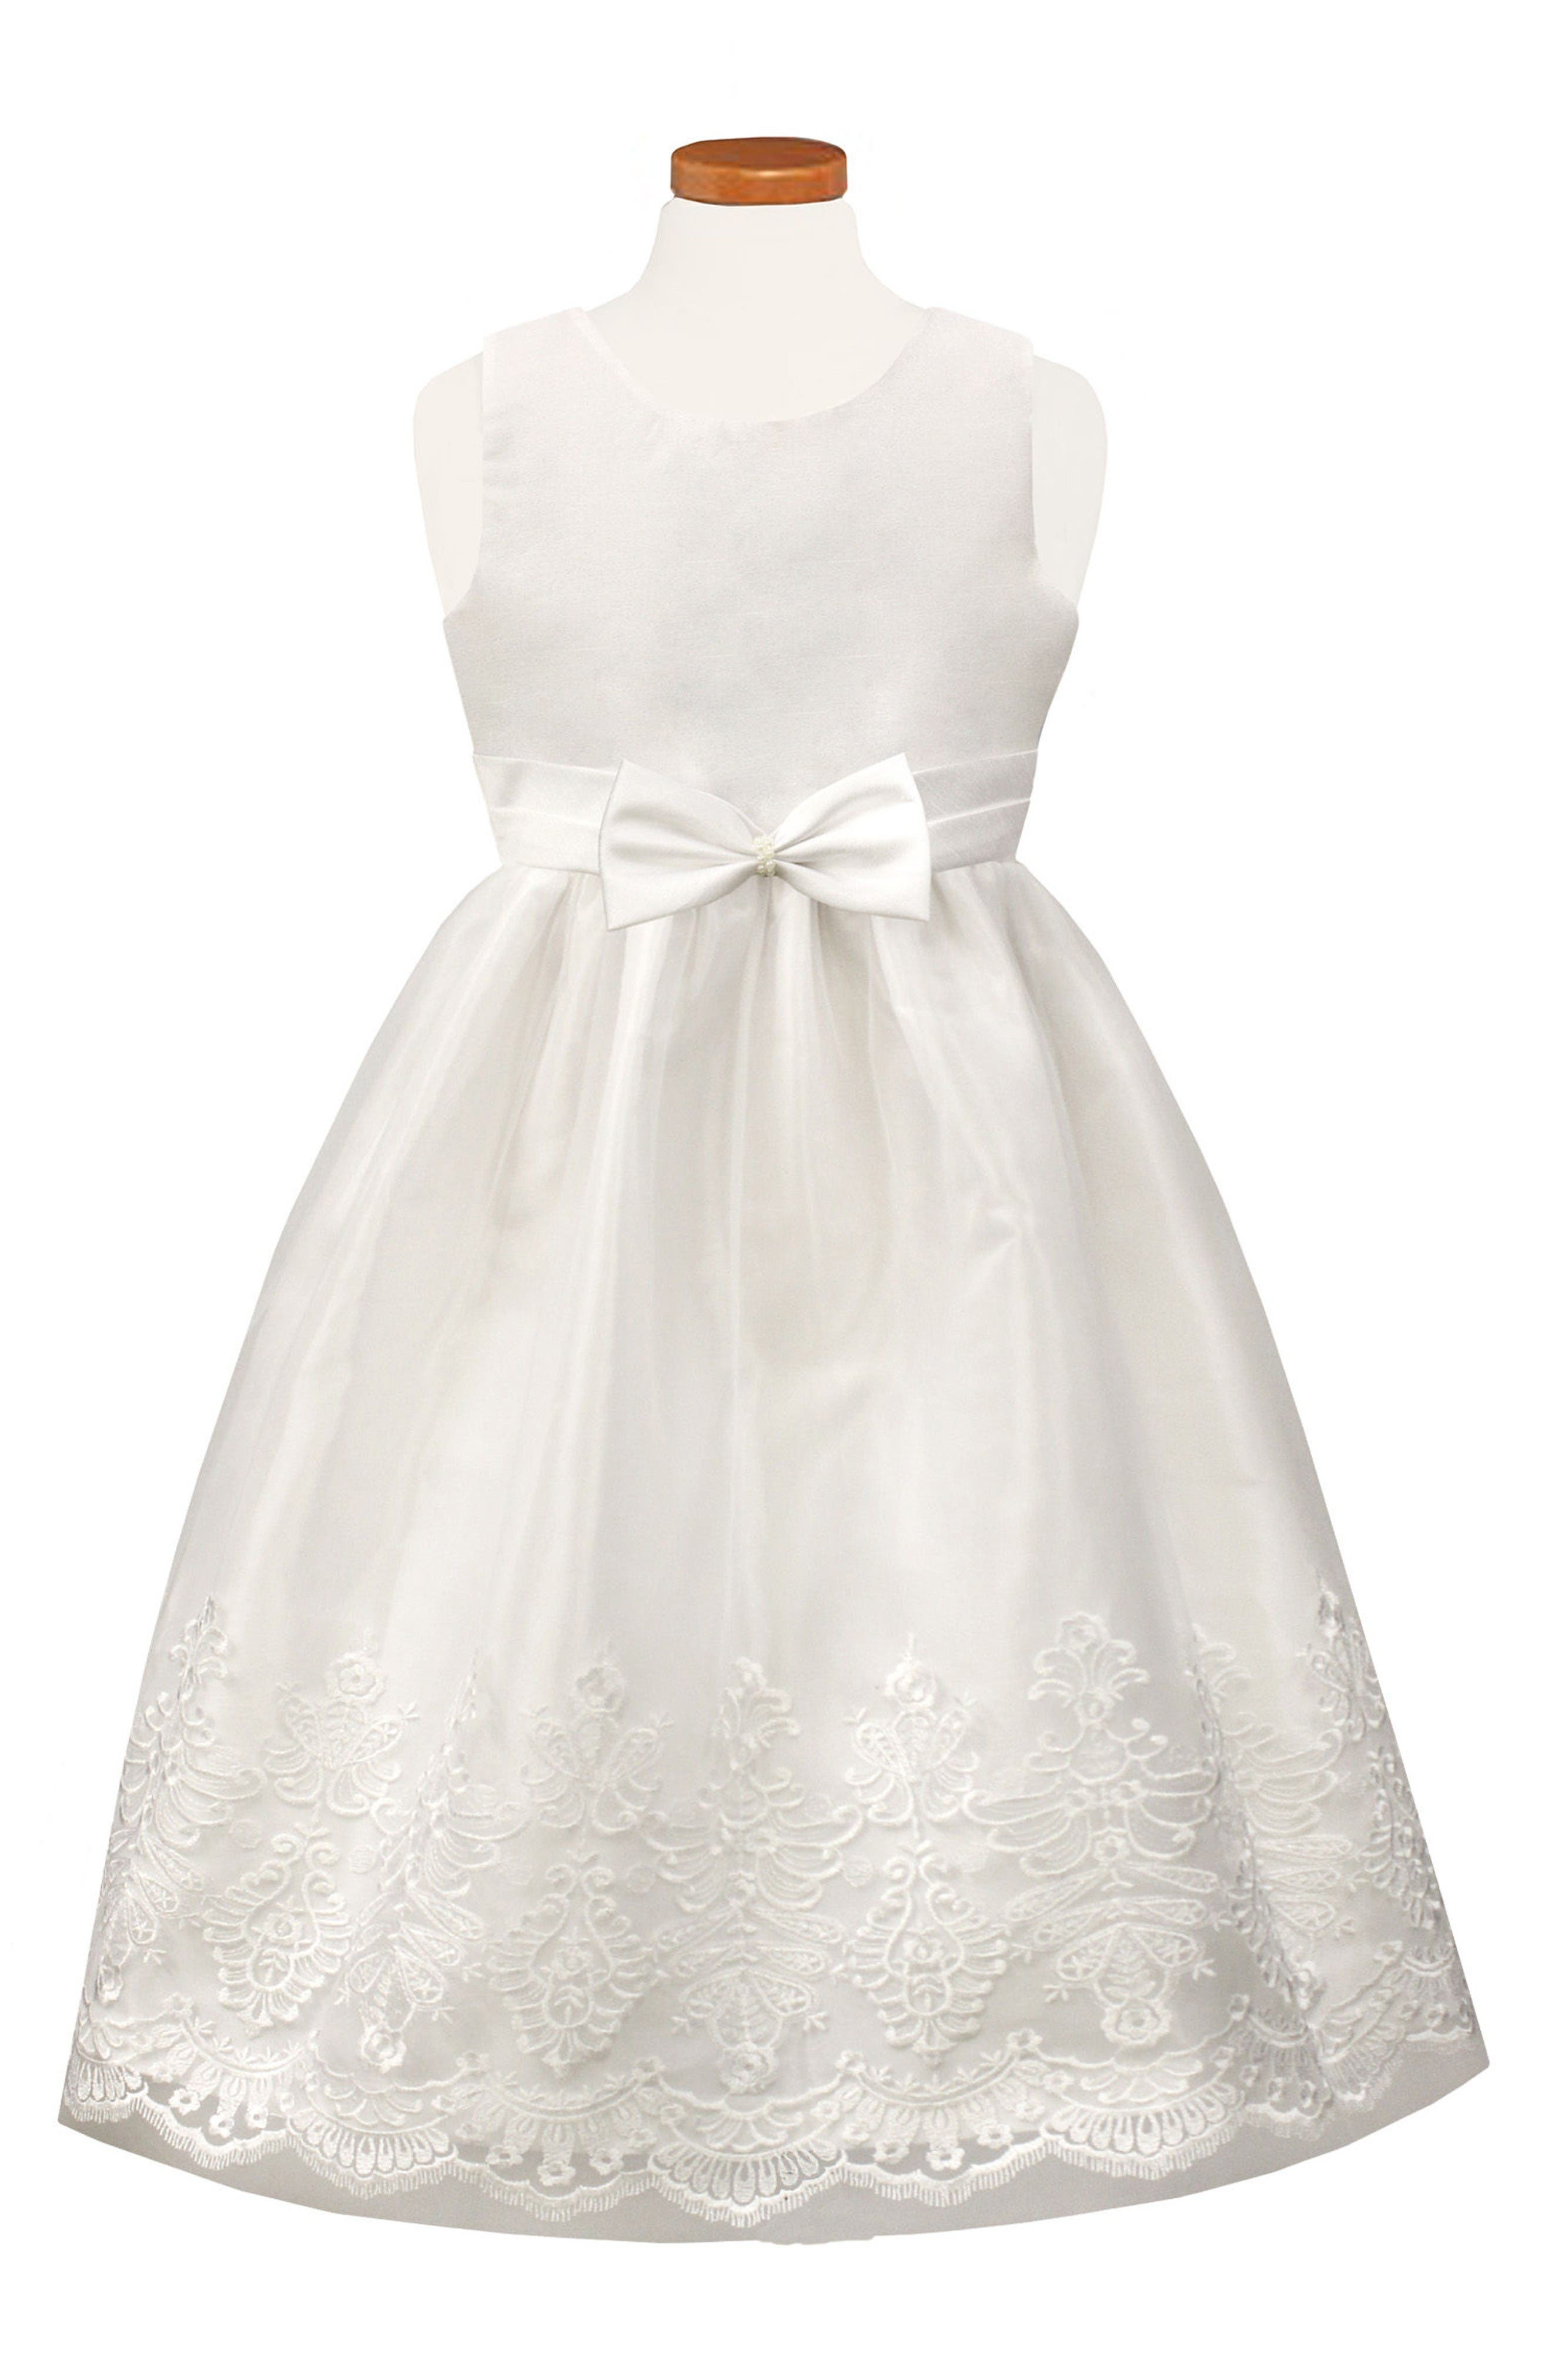 Main Image - Sorbet Embroidered Tulle Dress (Big Girls)